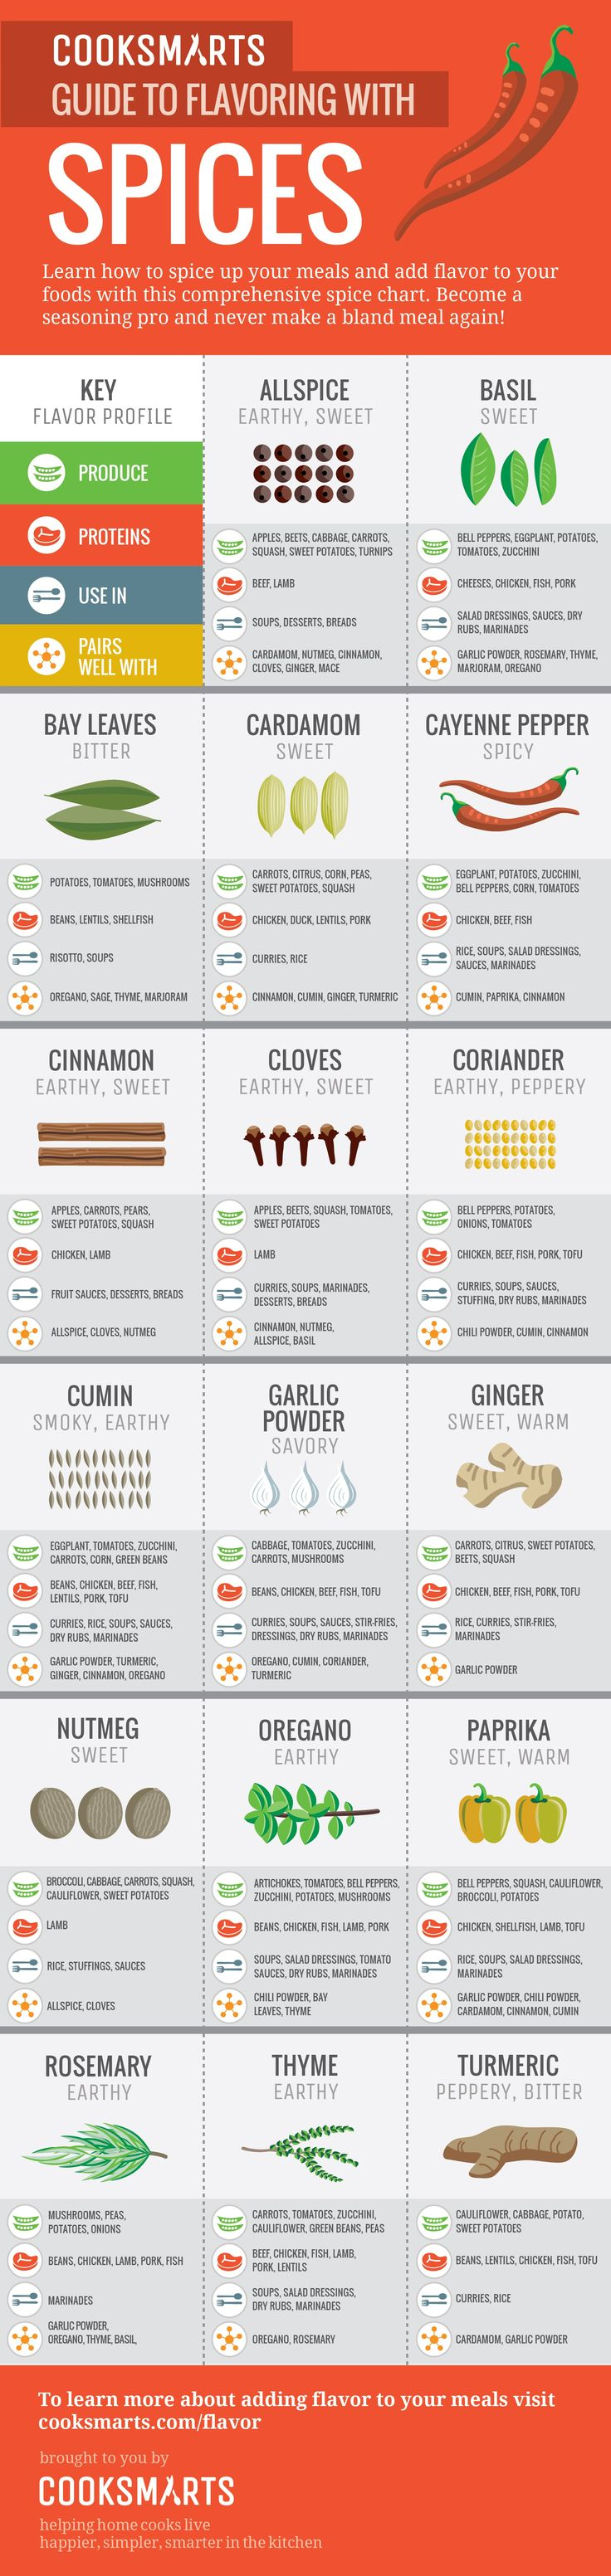 Infographic: The Ultimate Guide To Cooking With Spices - DesignTAXI.com